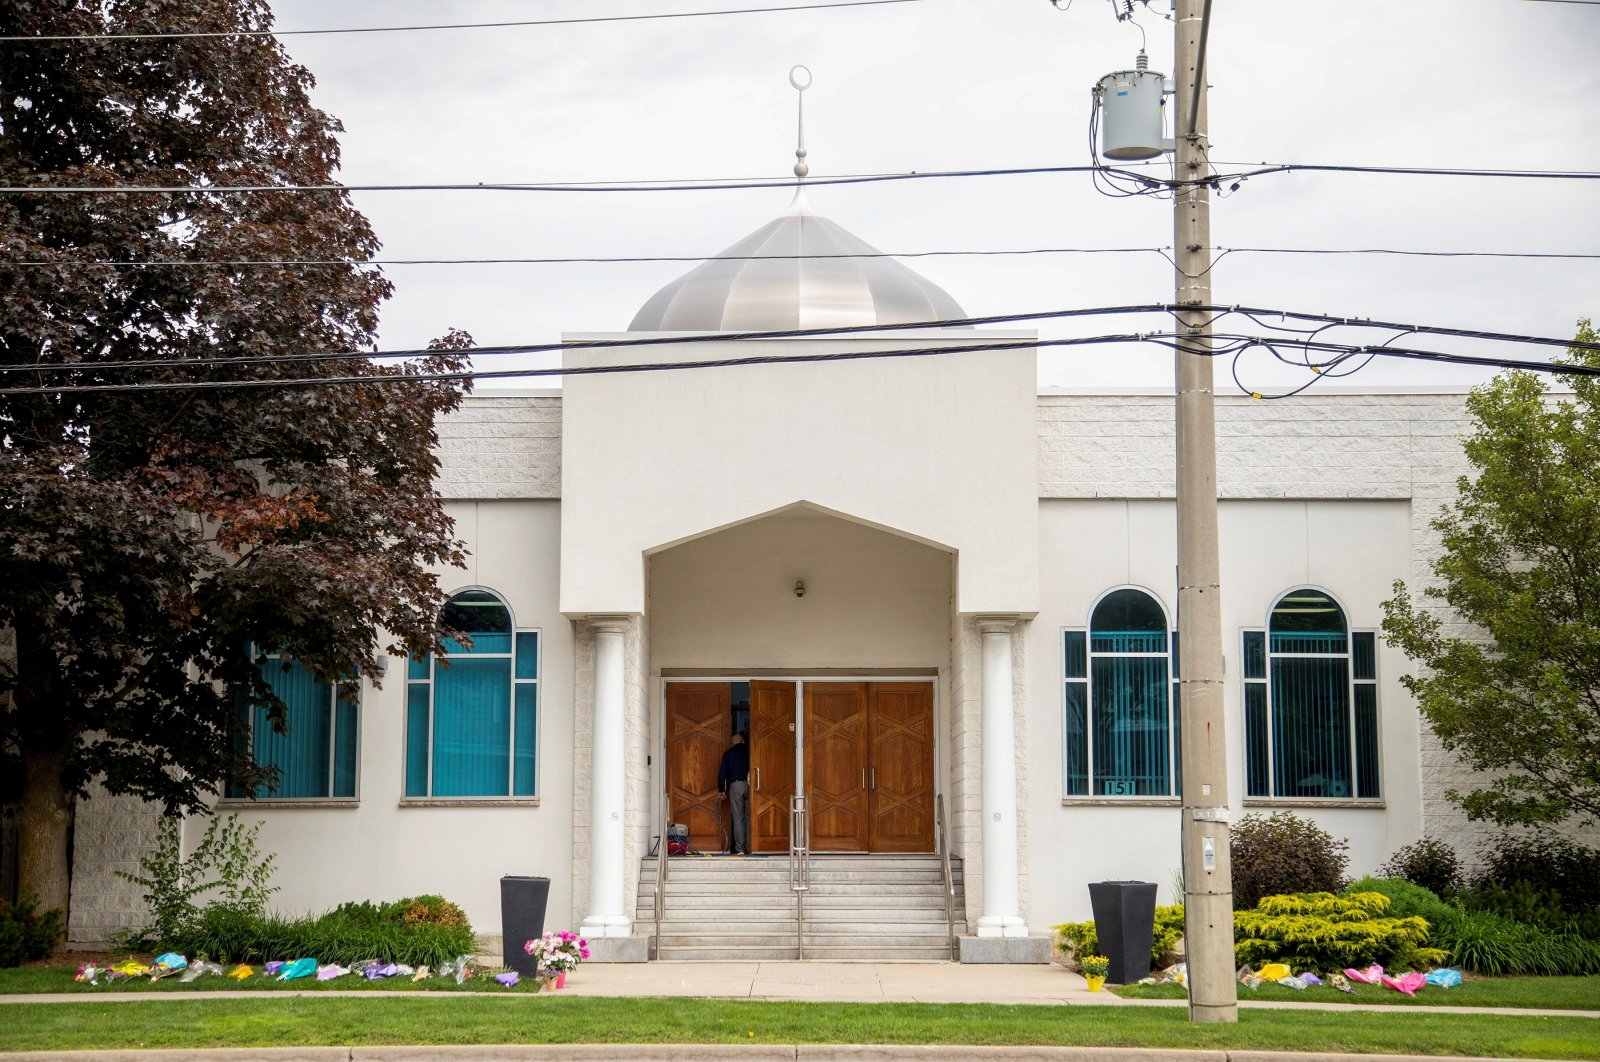 The London Muslim Mosque, which is located about 500 meters from where police arrested the suspect of a hate-motivated attack that killed four members of a Muslim family, in London, Ontario, Canada, June 8, 2021. (Reuters Photo)